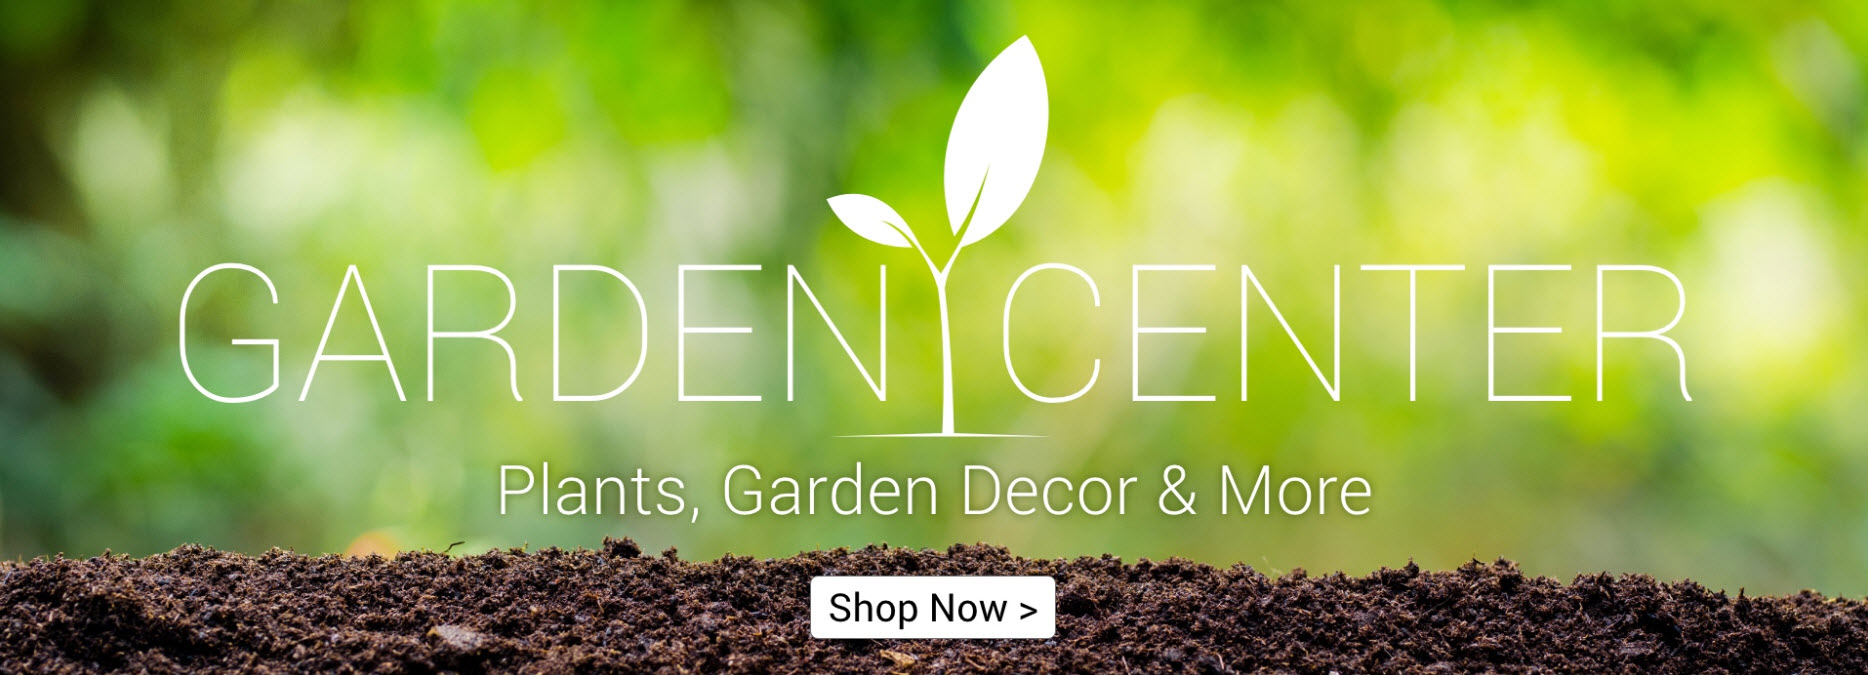 The Lakeside Garden Center - Shop Now